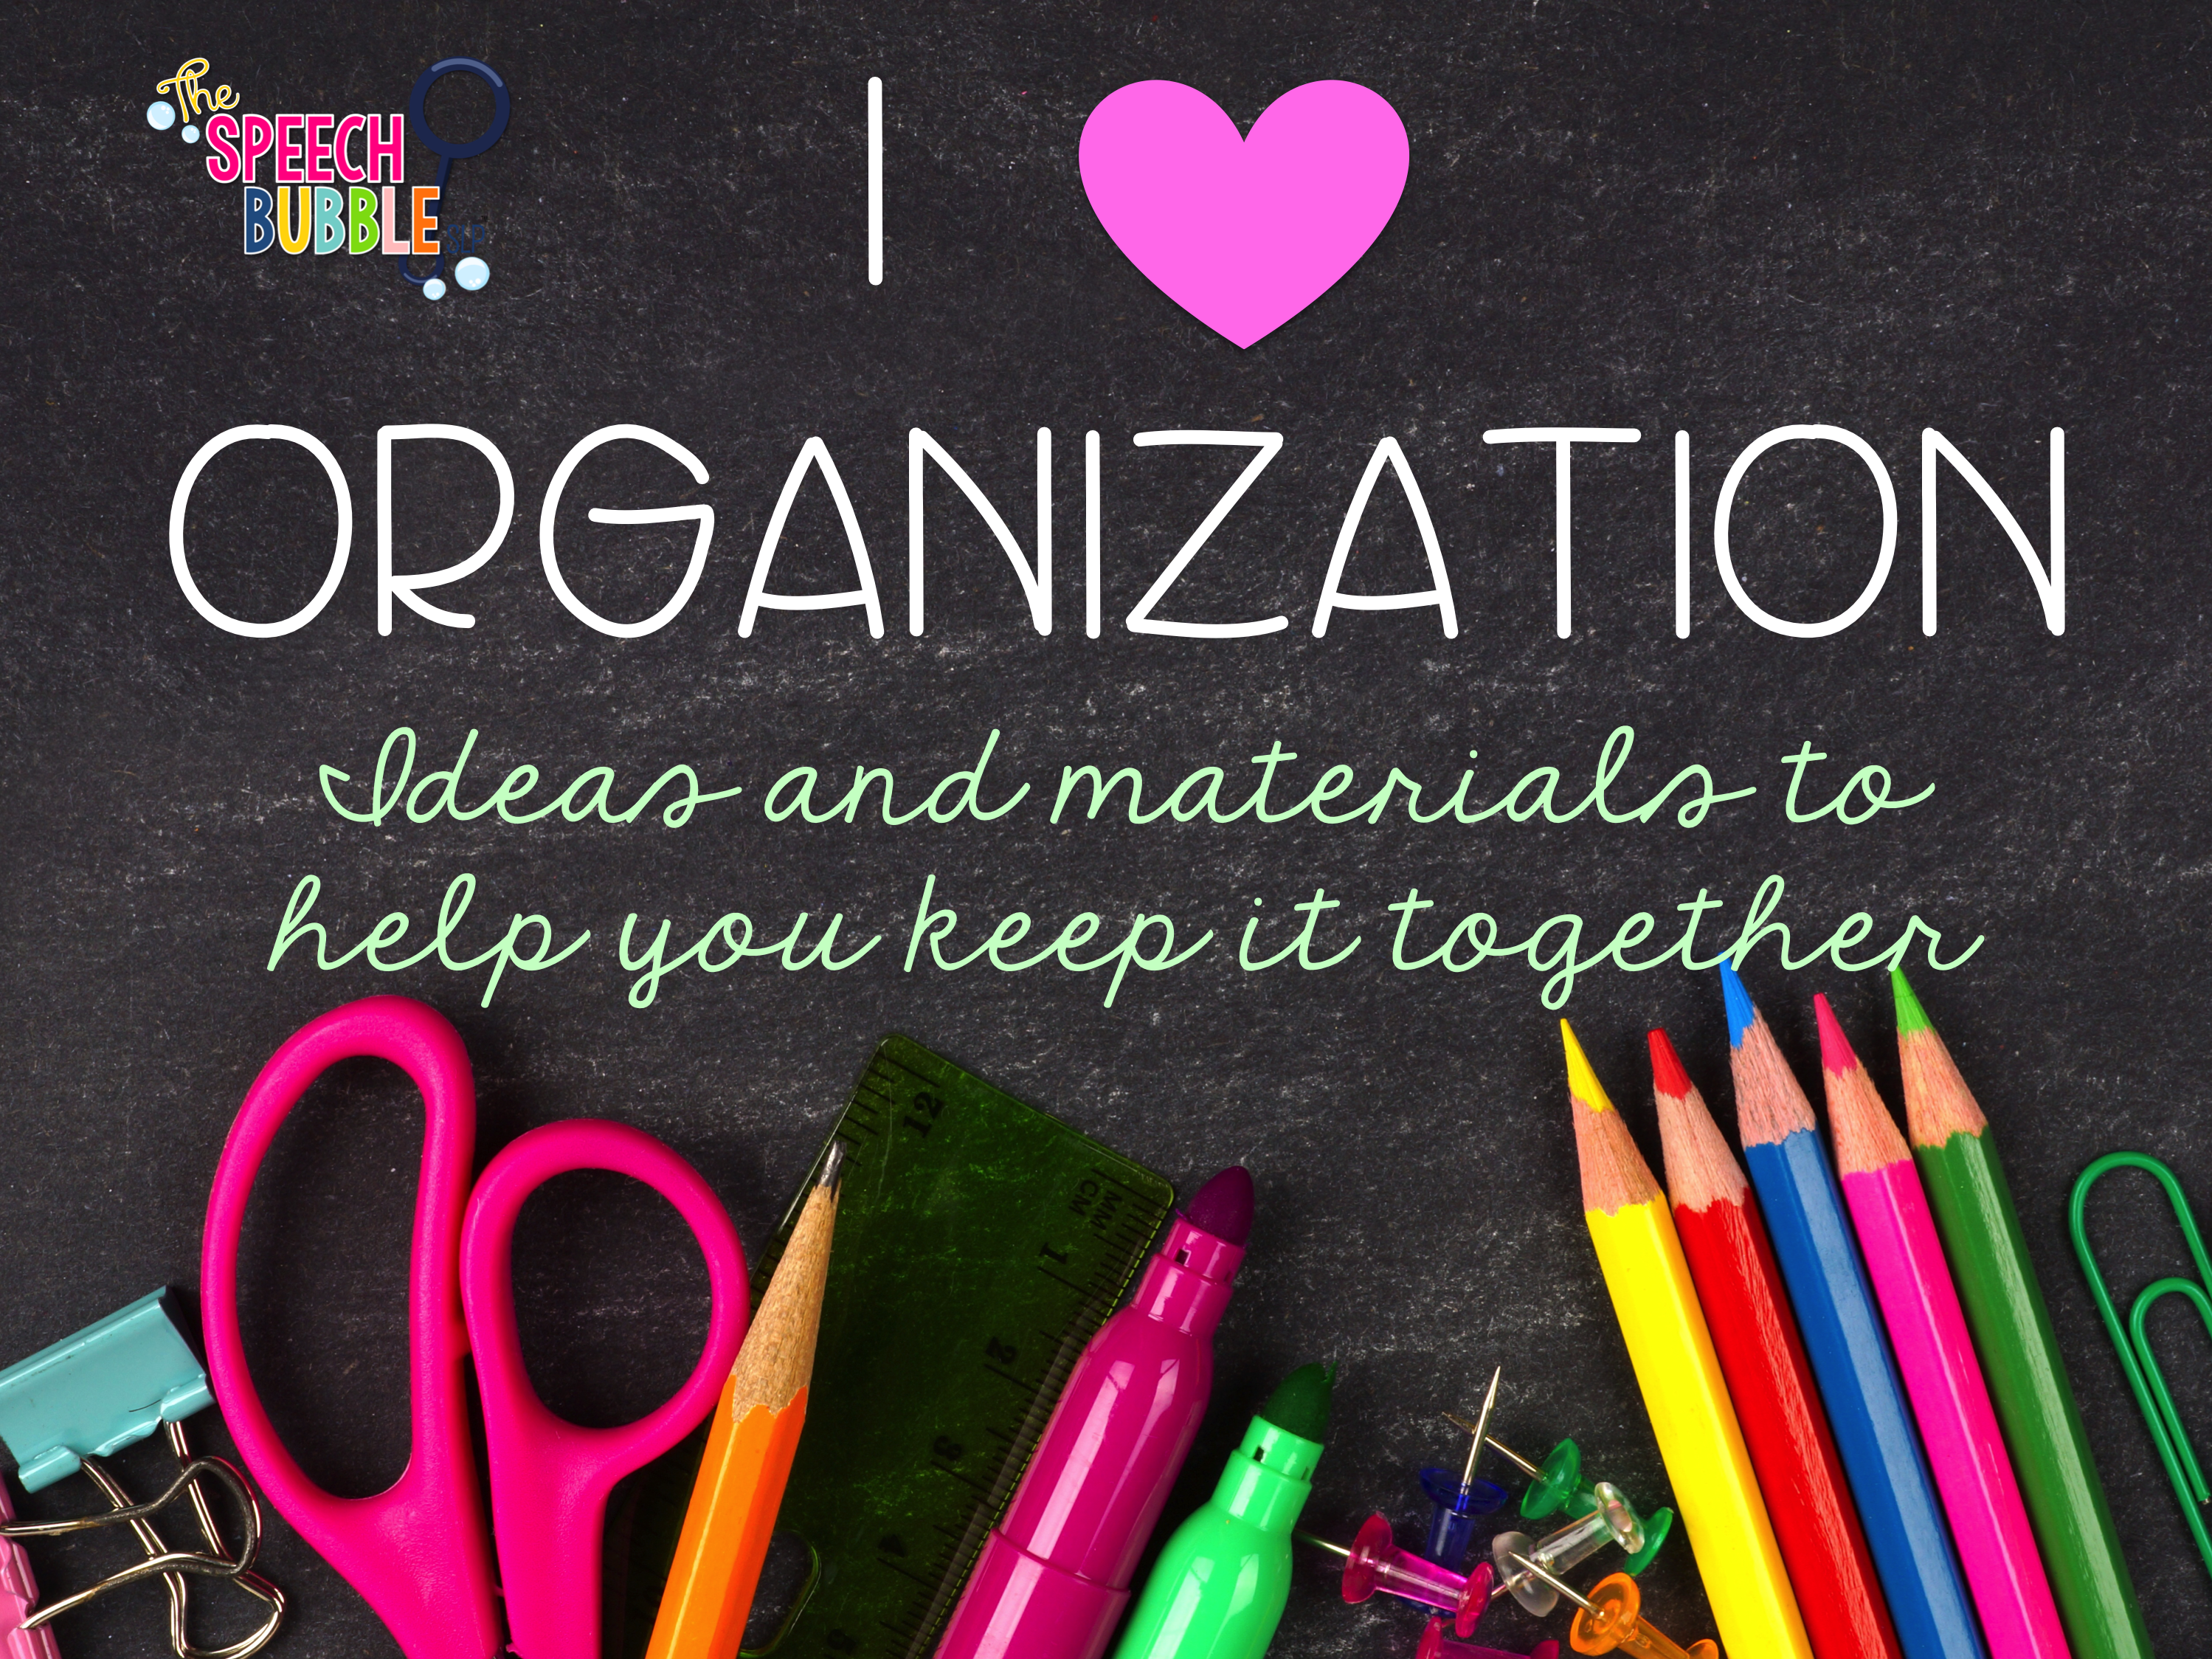 I Heart Organization! Tips on Organization for SLPs